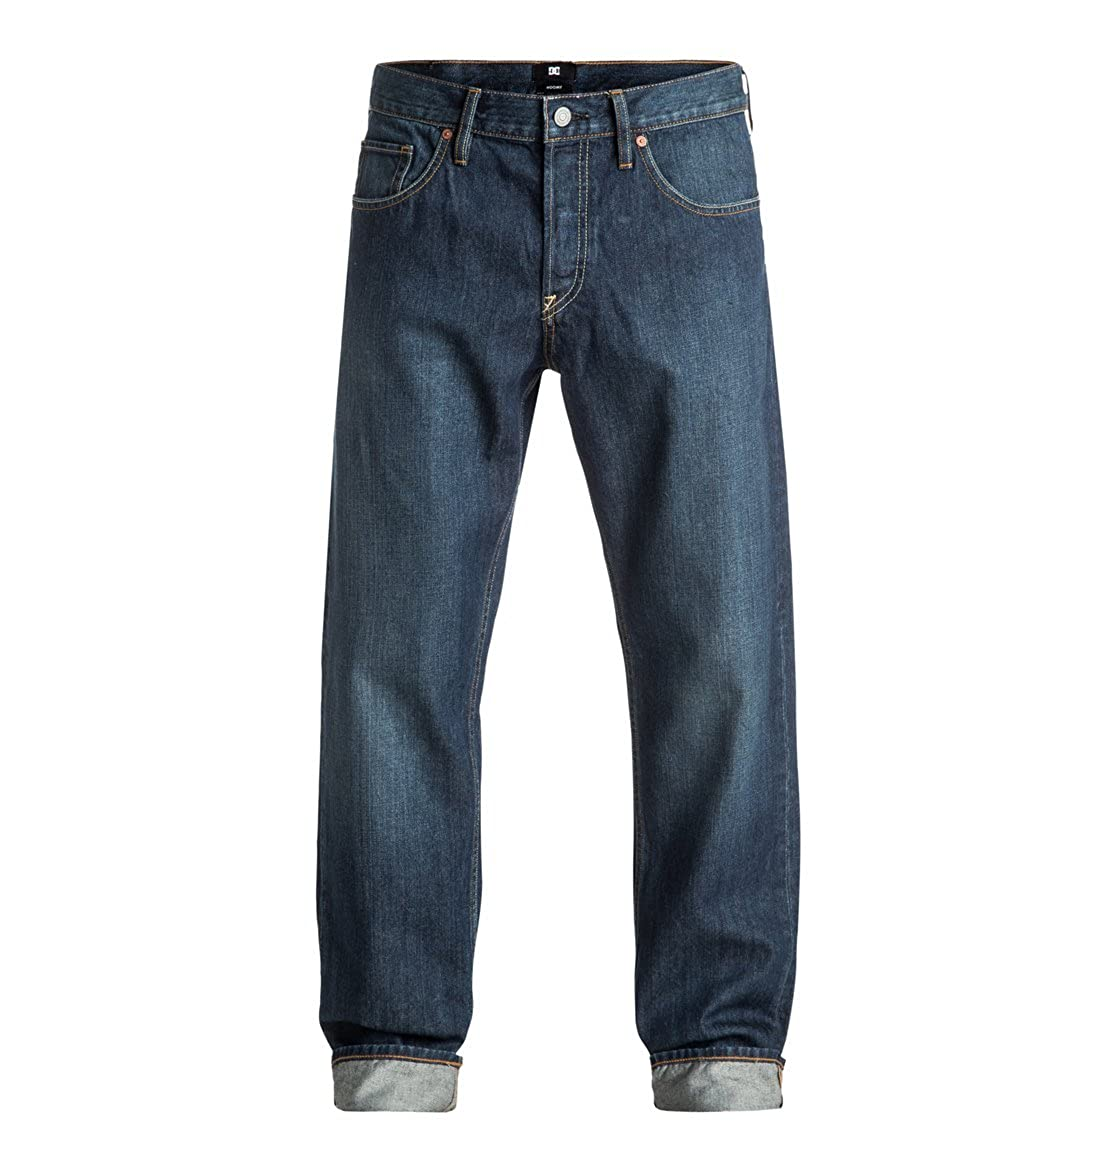 DC Schuhes Worker Roomy Stone Wash - Roomy Fit Jeans für Männer EDYDP03296